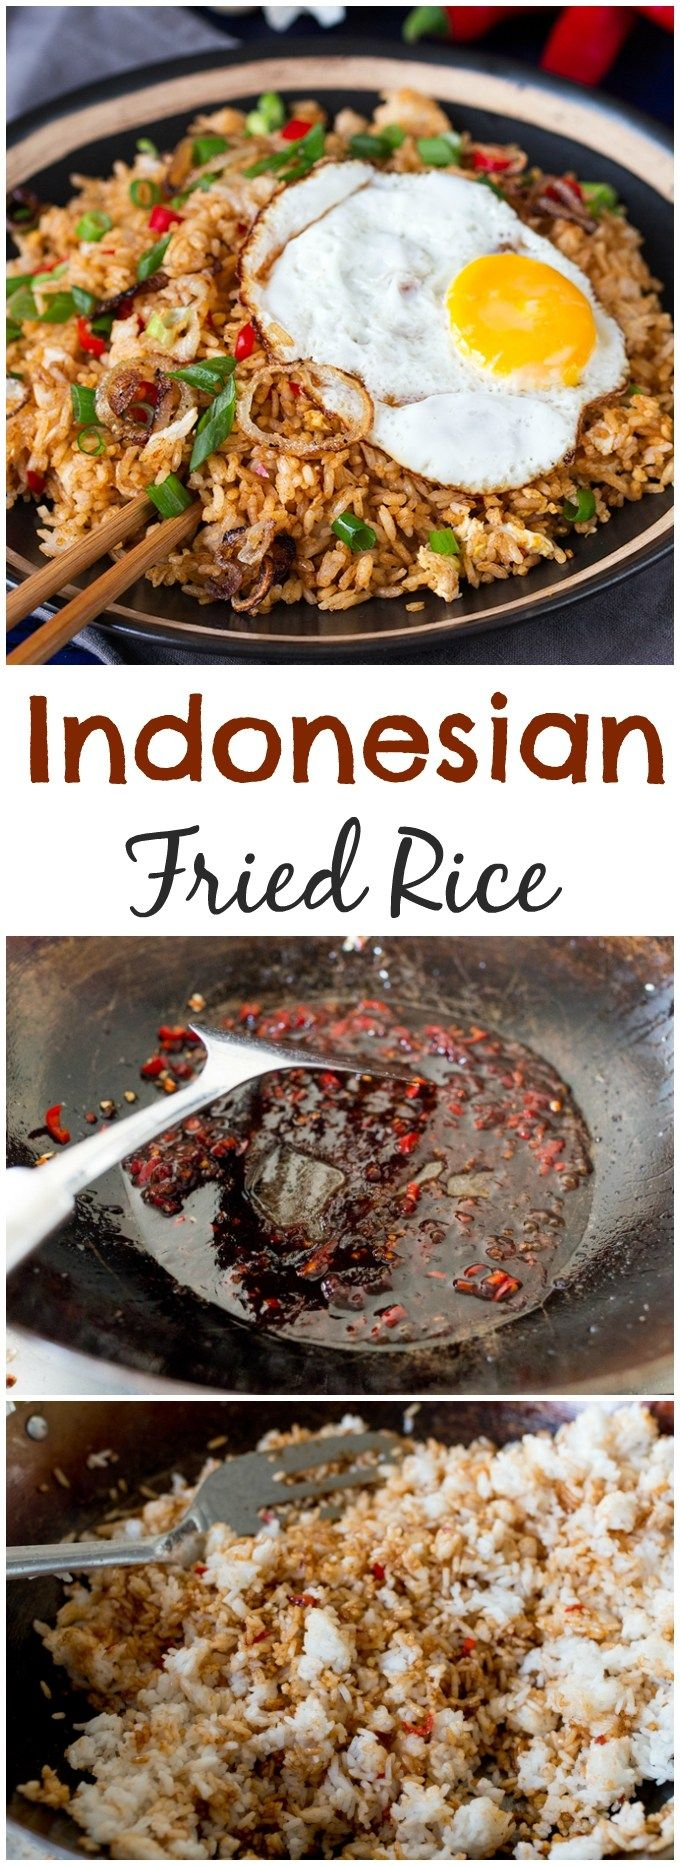 How to make spicy Indonesian fried rice.